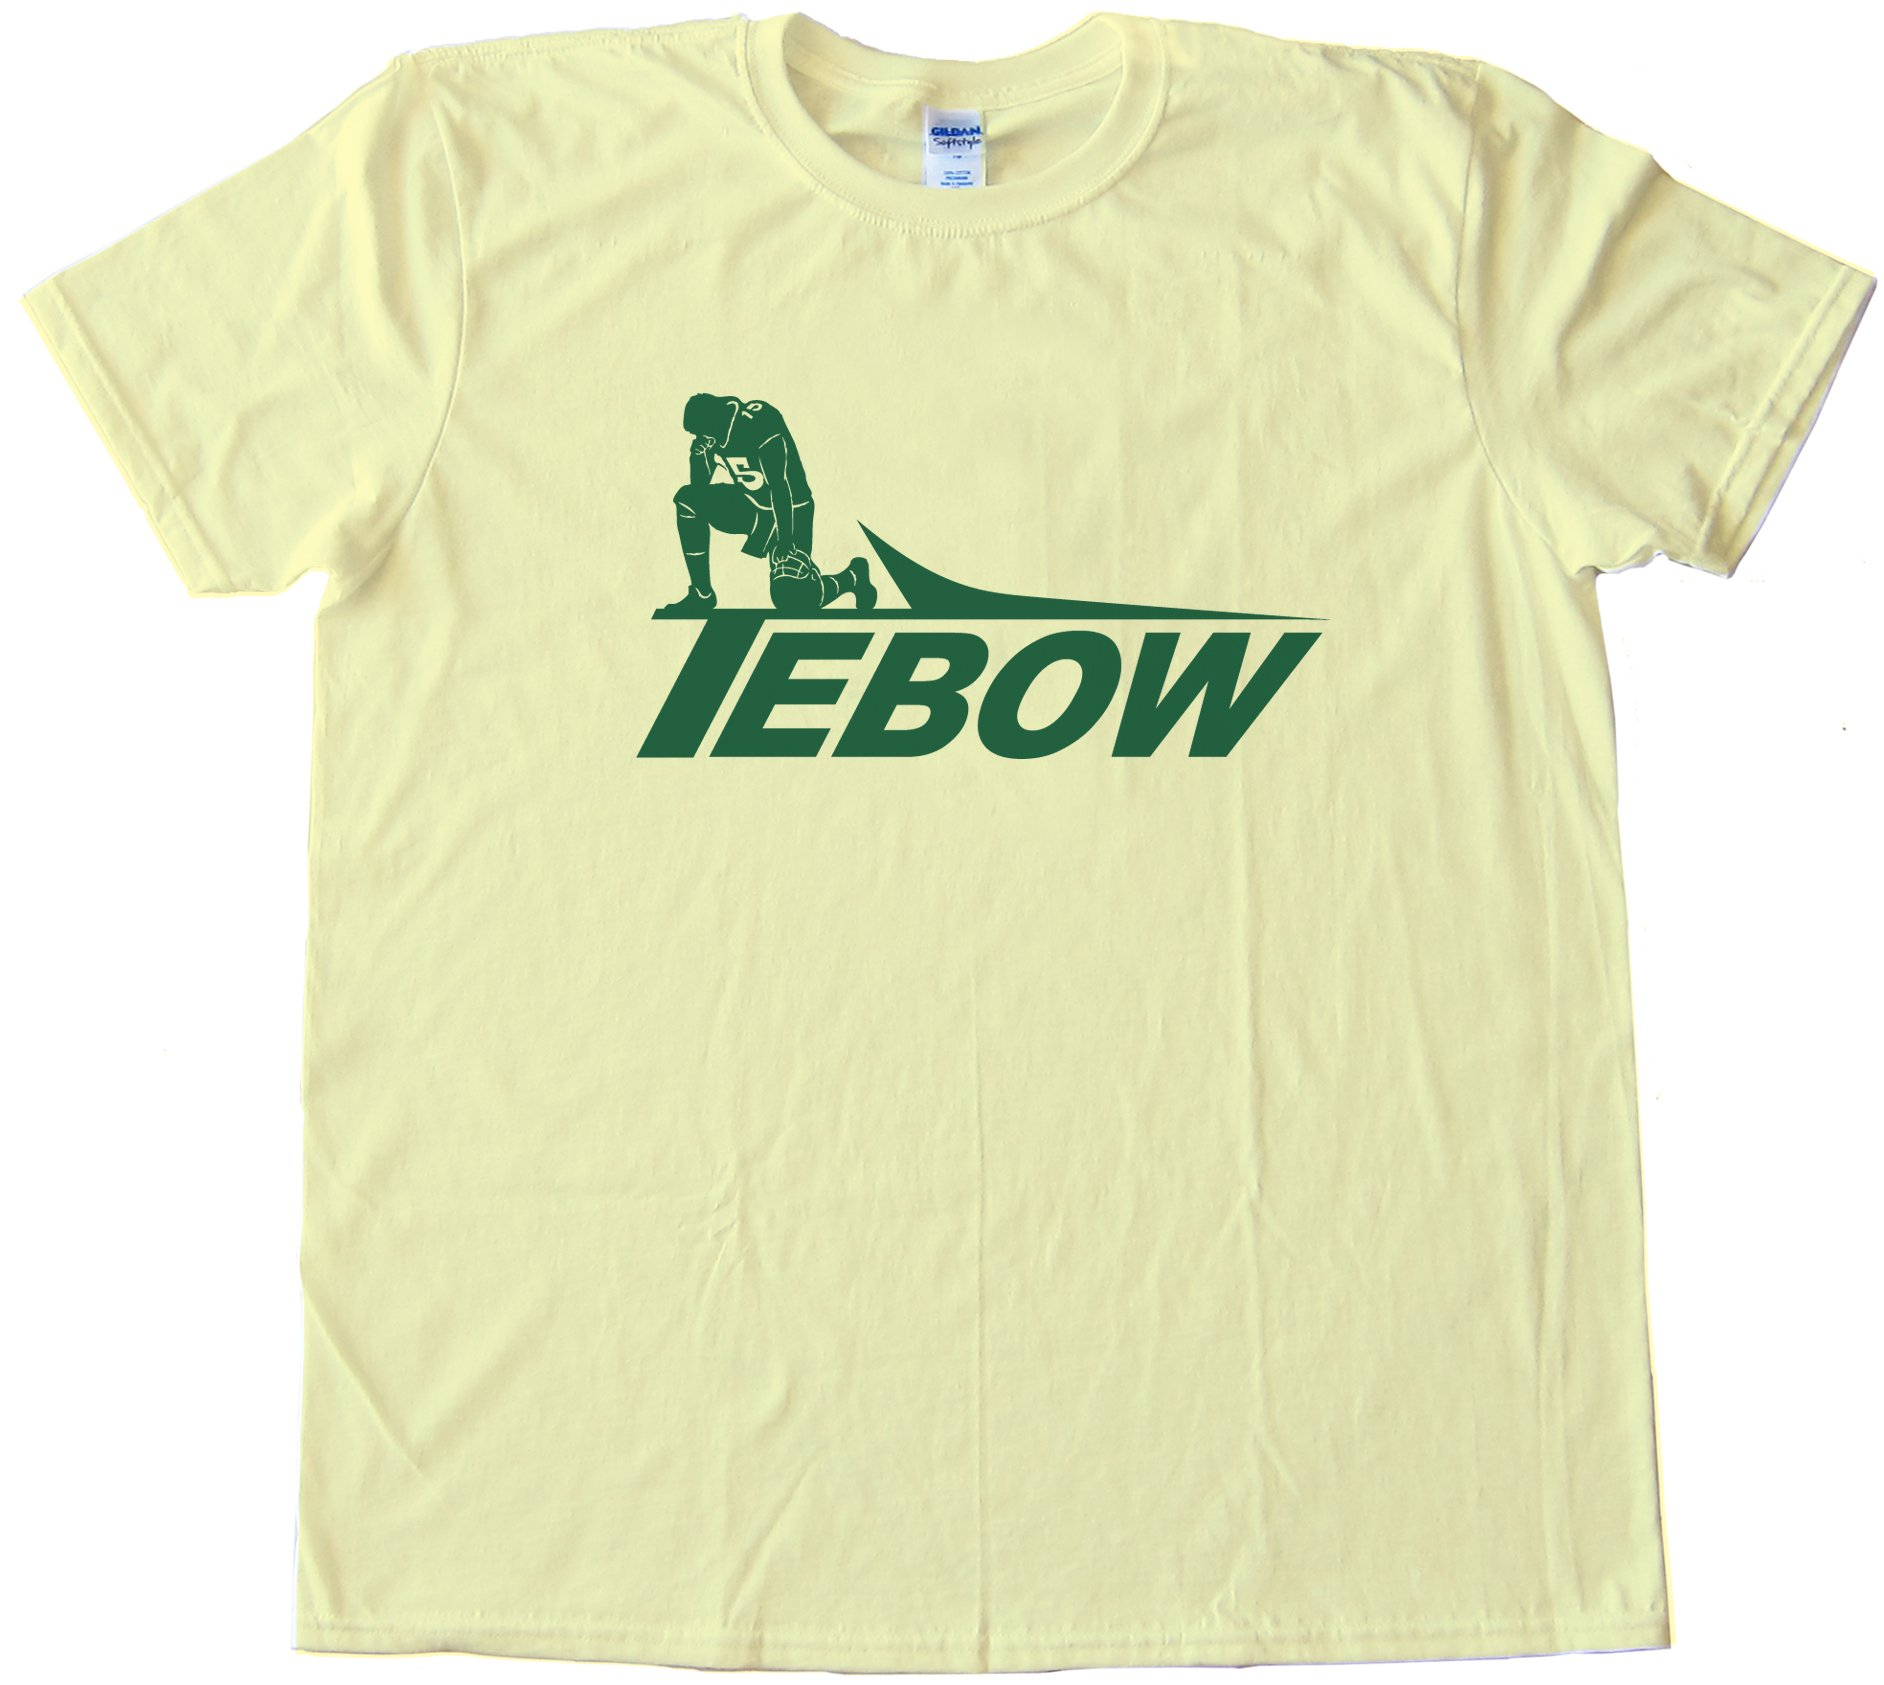 Tebow Jets Tim Tebowing Tee Shirt